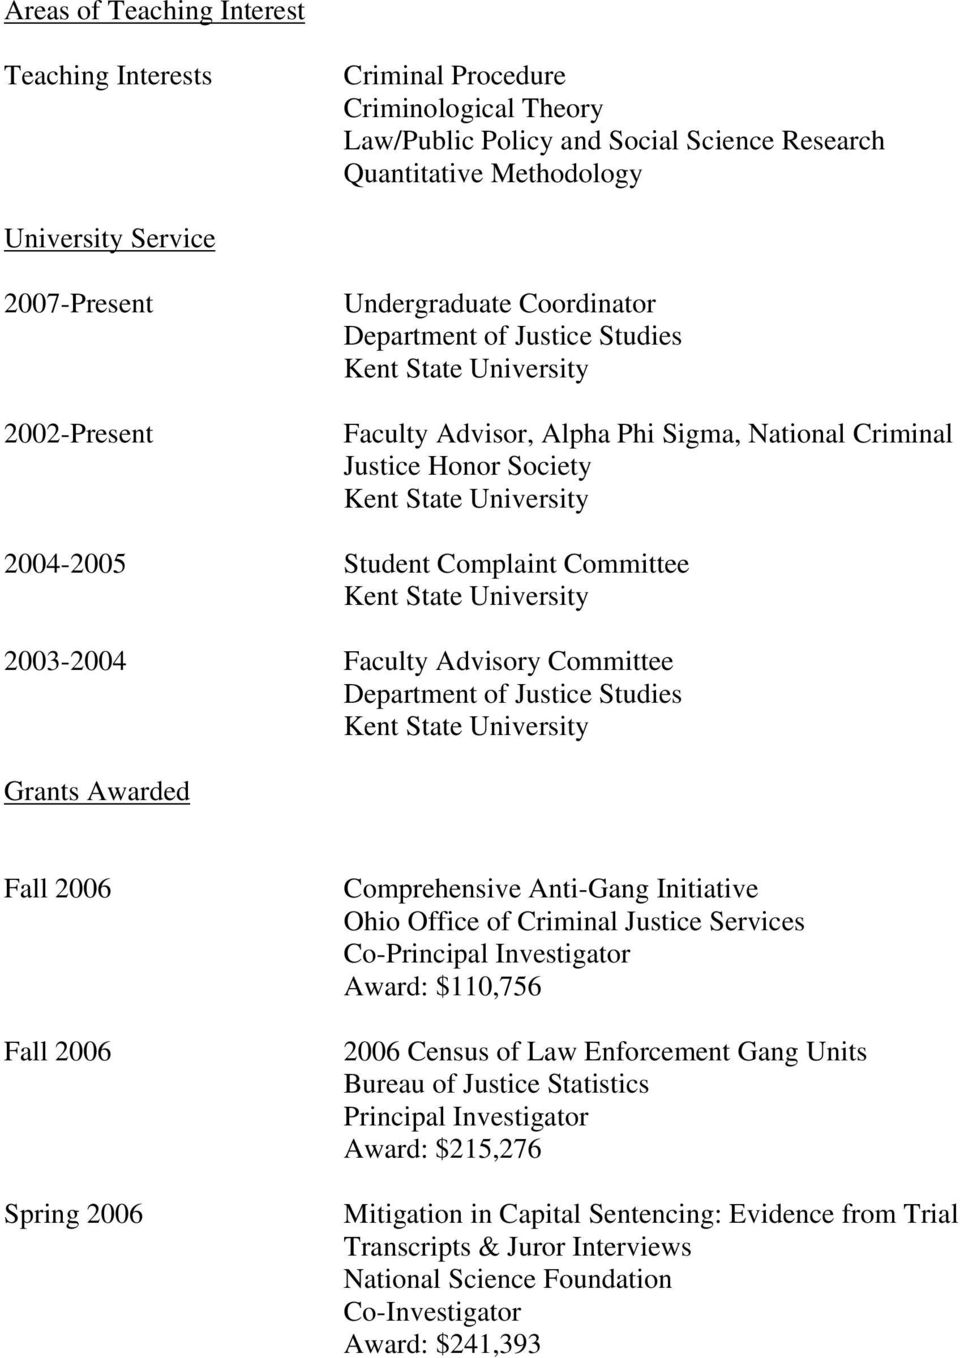 Awarded Fall 2006 Fall 2006 Spring 2006 Comprehensive Anti-Gang Initiative Ohio Office of Criminal Justice Services Co-Principal Investigator Award: $110,756 2006 Census of Law Enforcement Gang Units